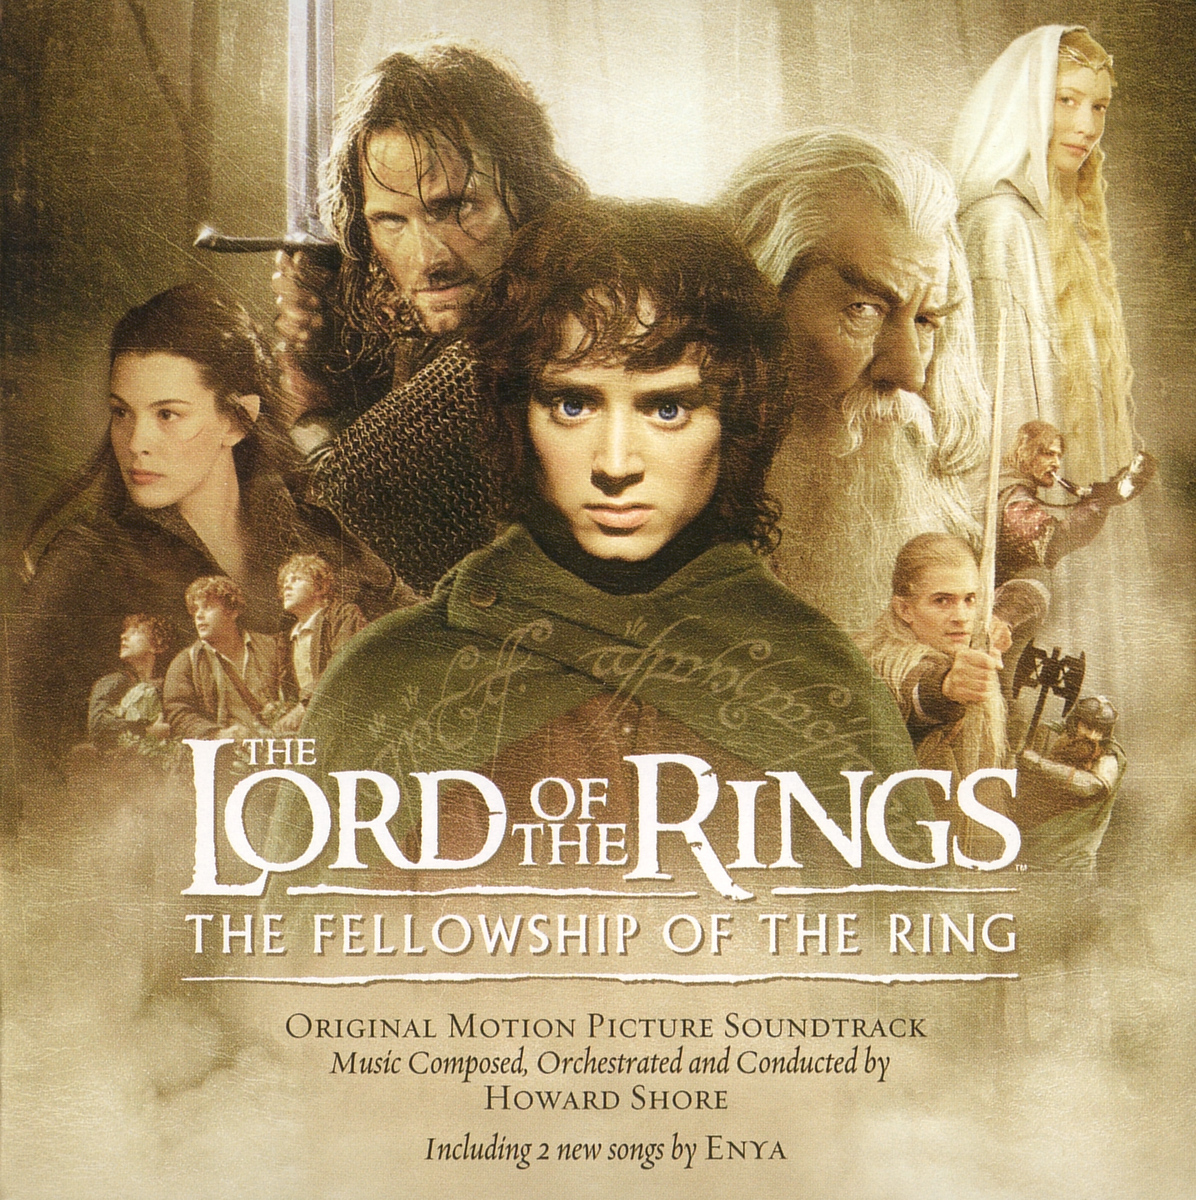 (2001) Howard Shore The Lord of the Rings The Fellowship of the Ring